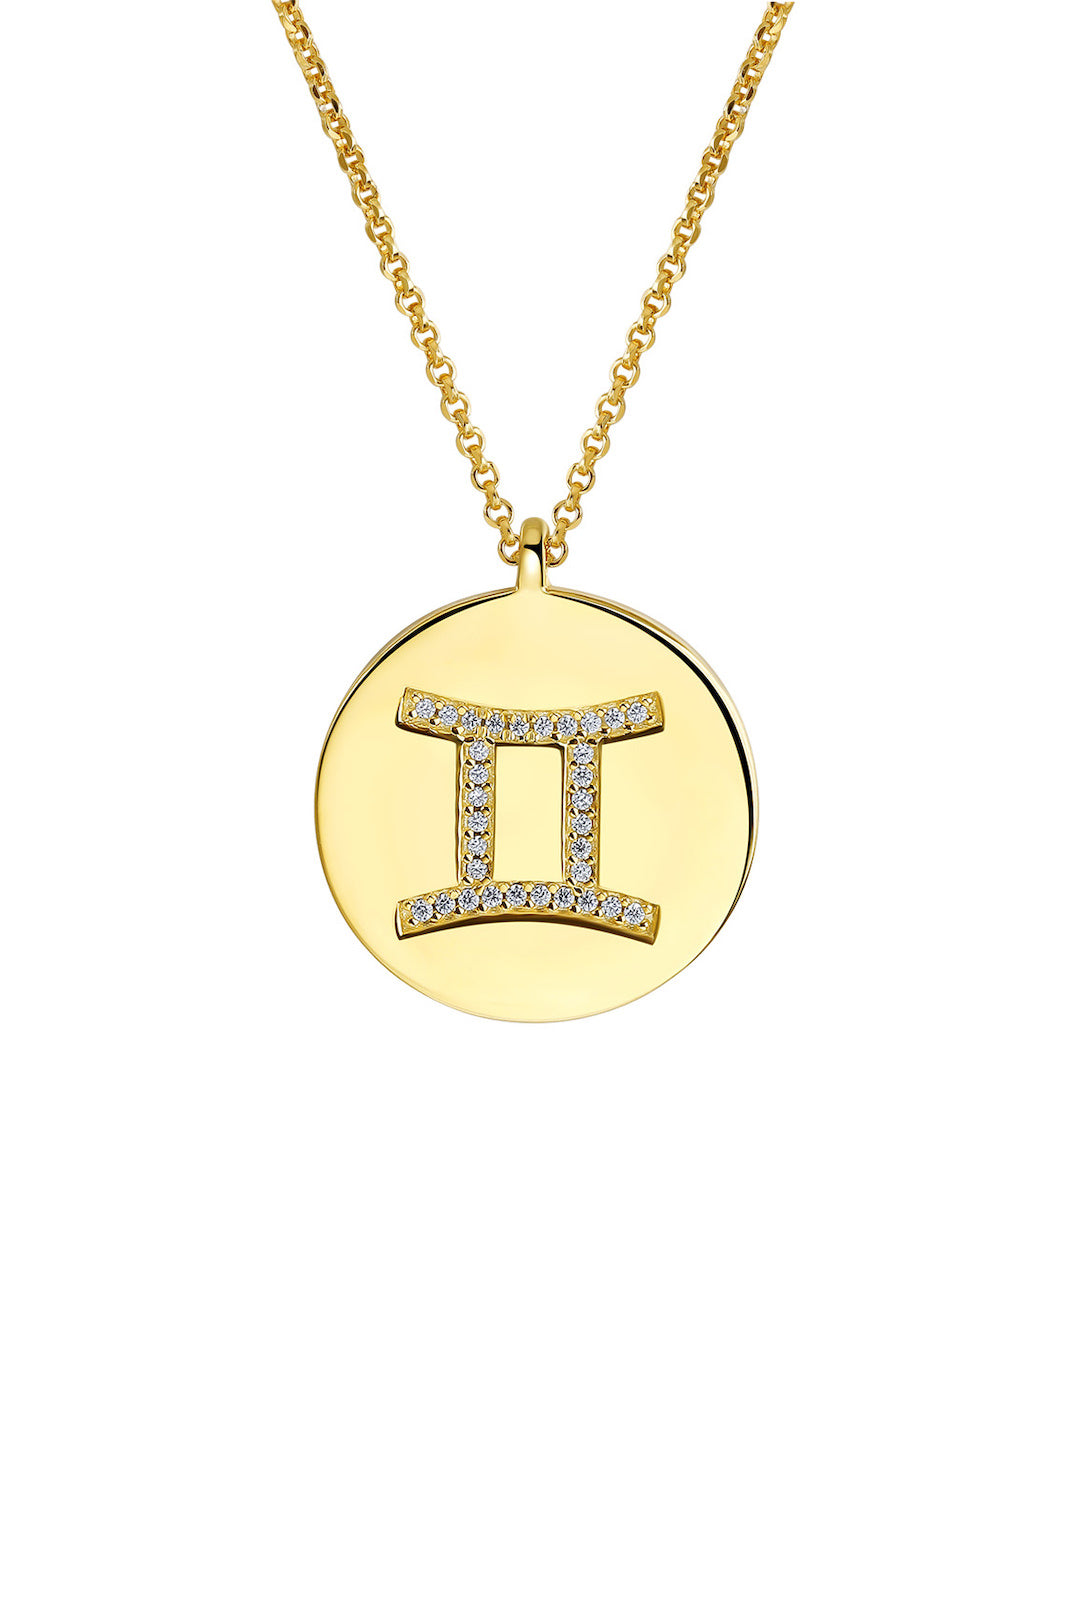 Gold Plated Silver Zodiac Necklace - Gemini Side VIEW